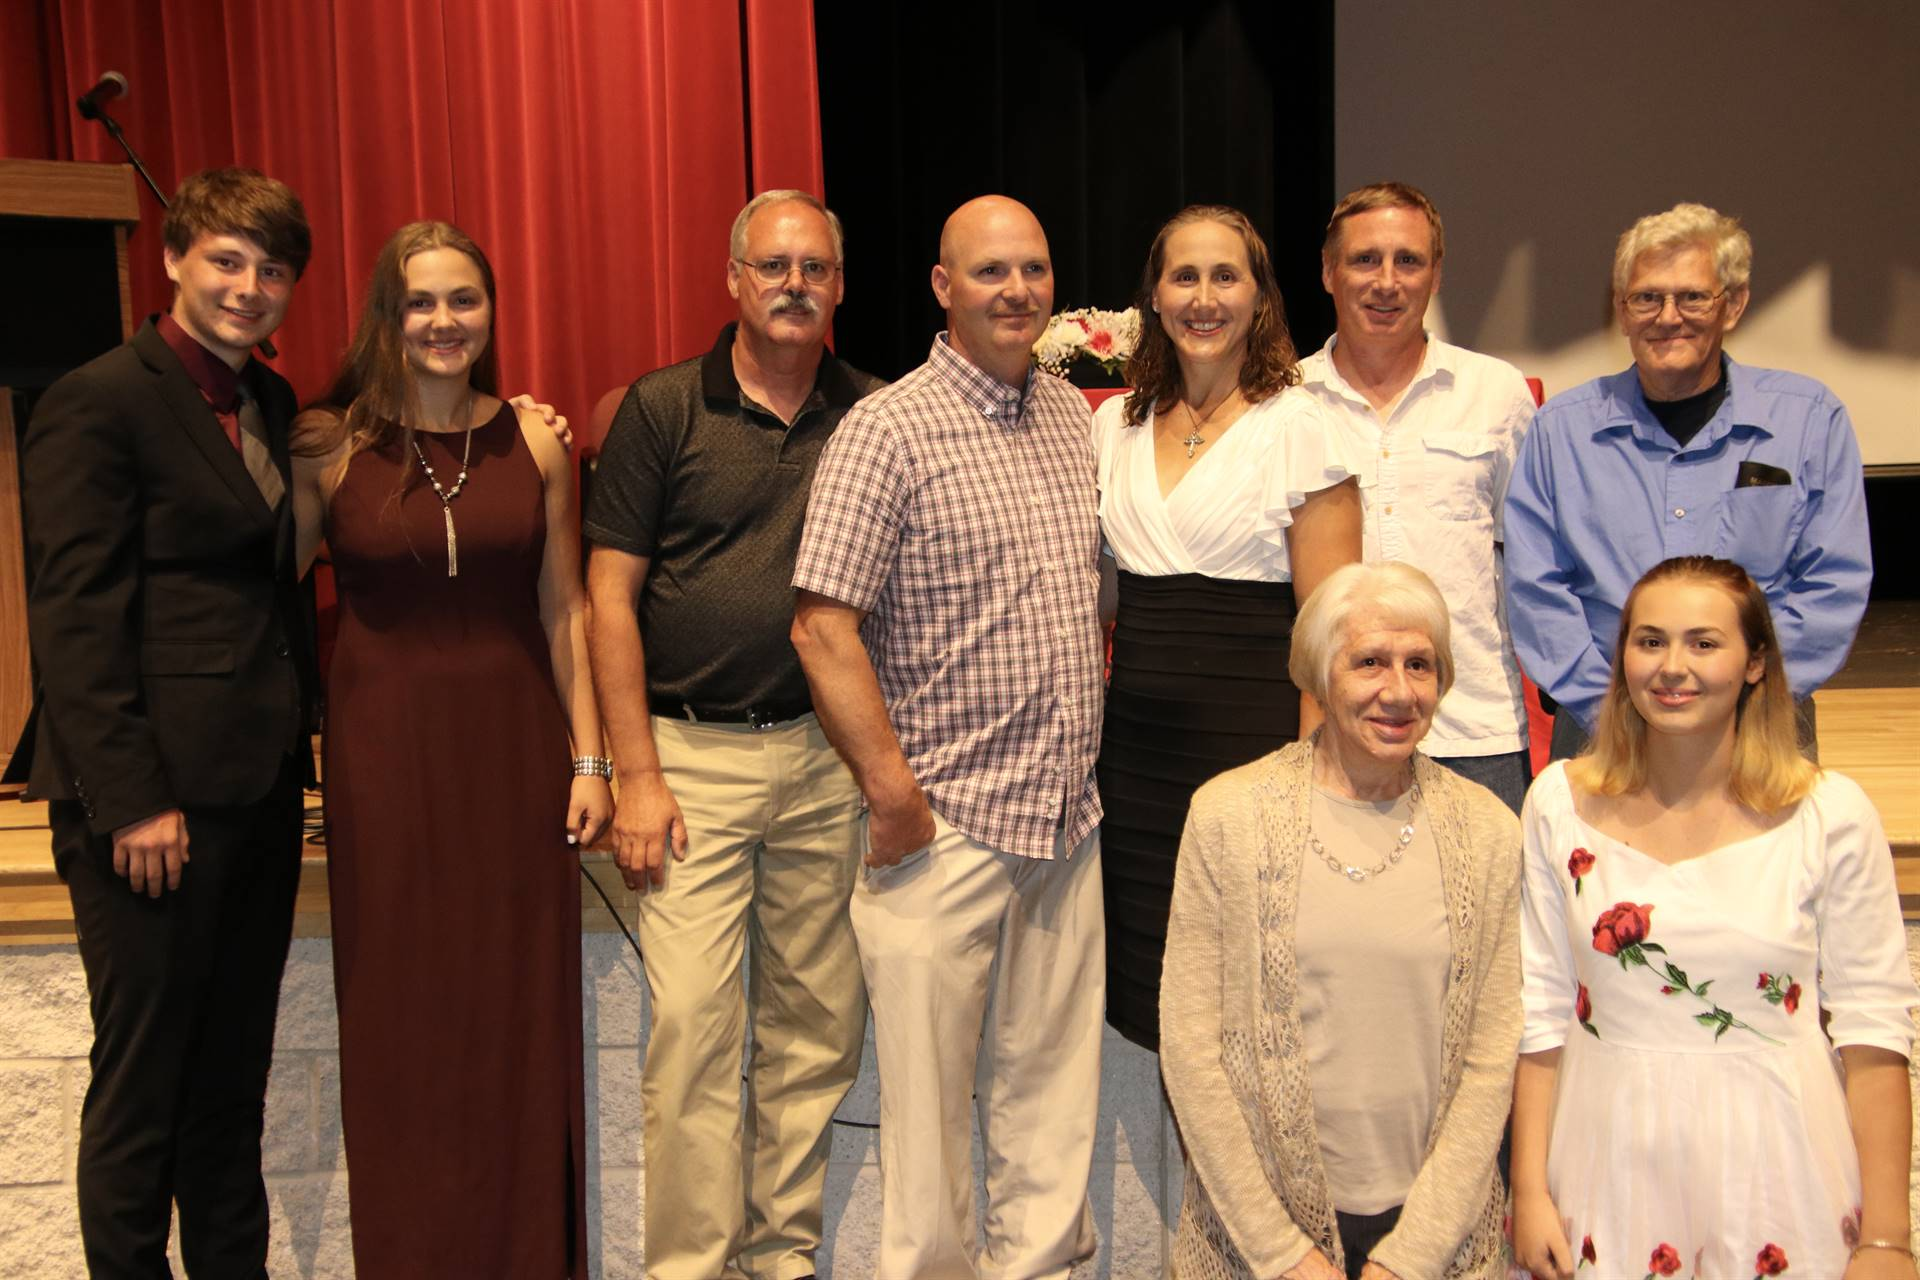 Hall of Distinction honoree family - Barrows